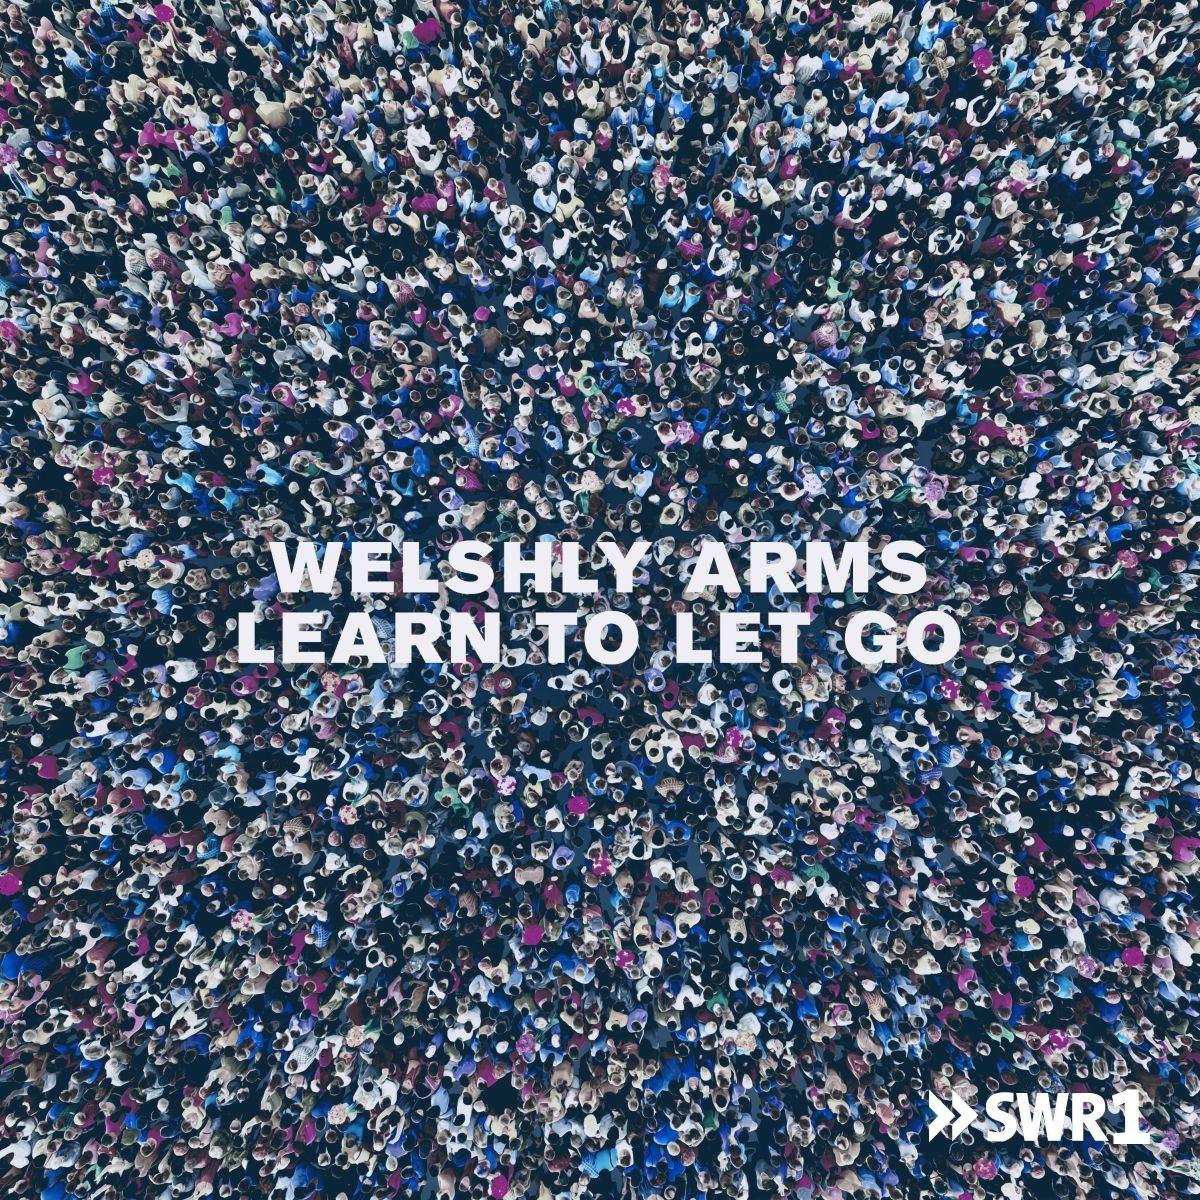 Learn to let go (Foto: Welshly Arms)